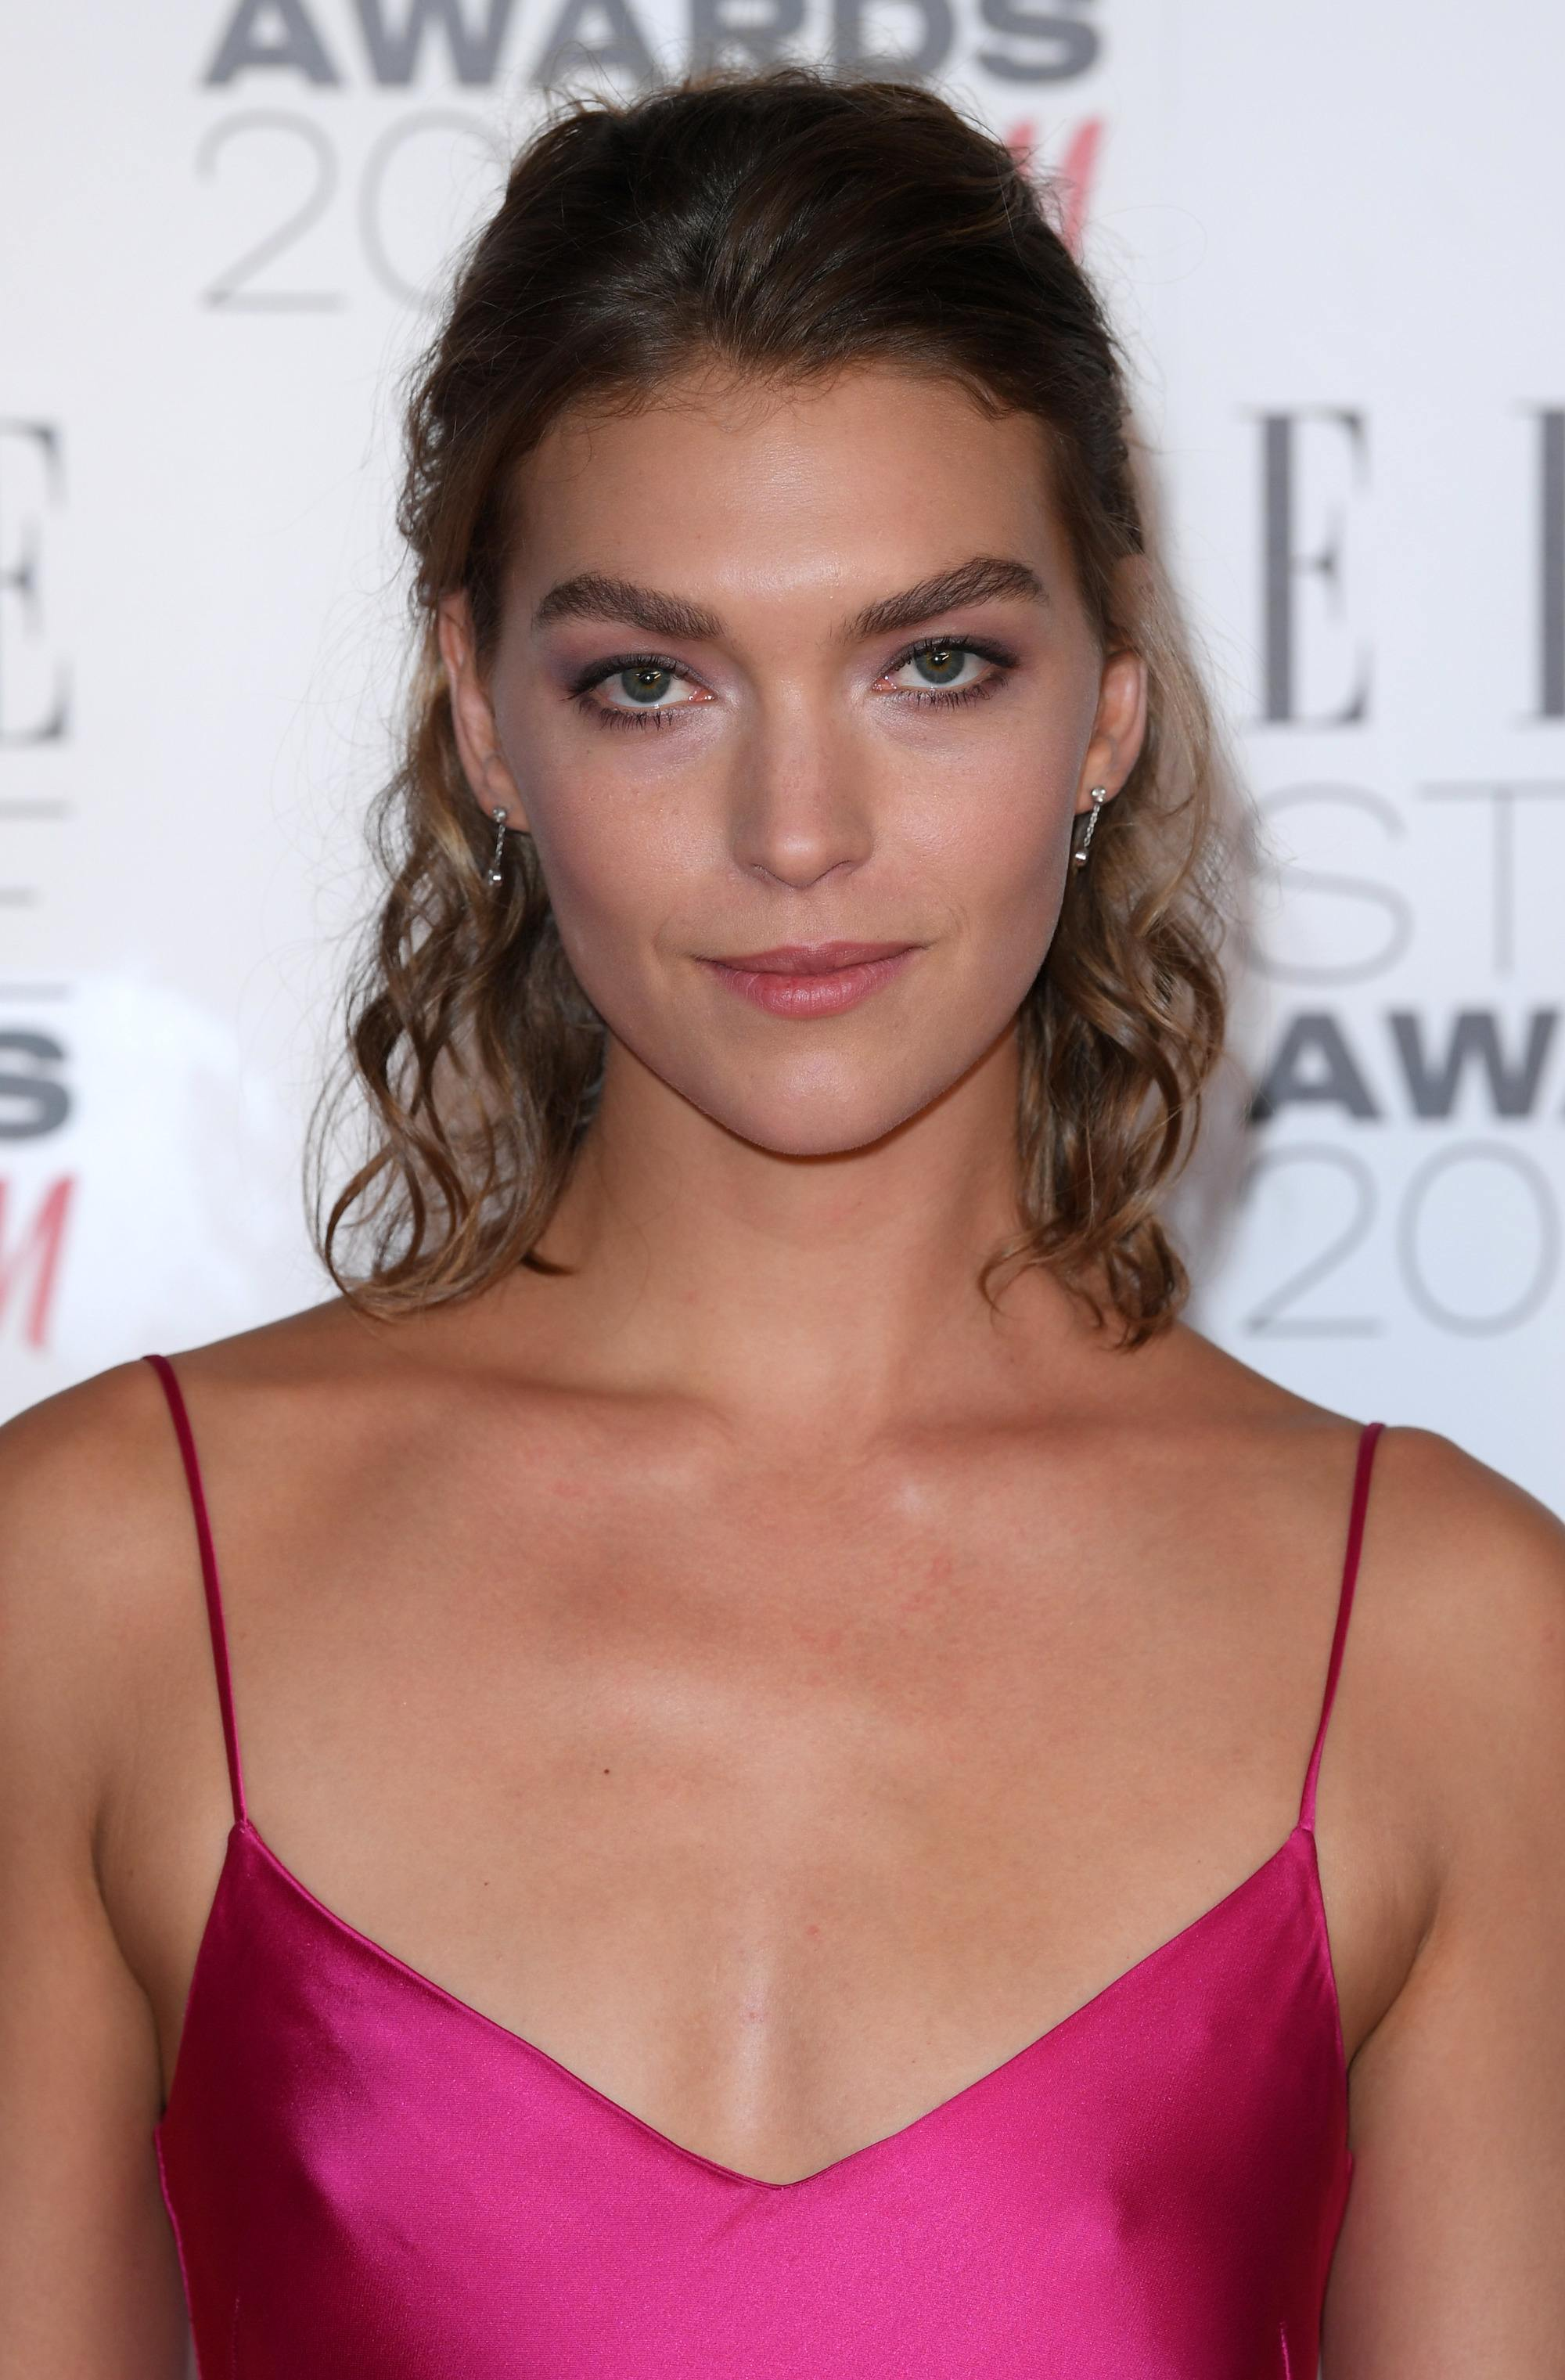 Arizona Muse at the elle style awards in a silk pink slip dress with tousled wavy hair